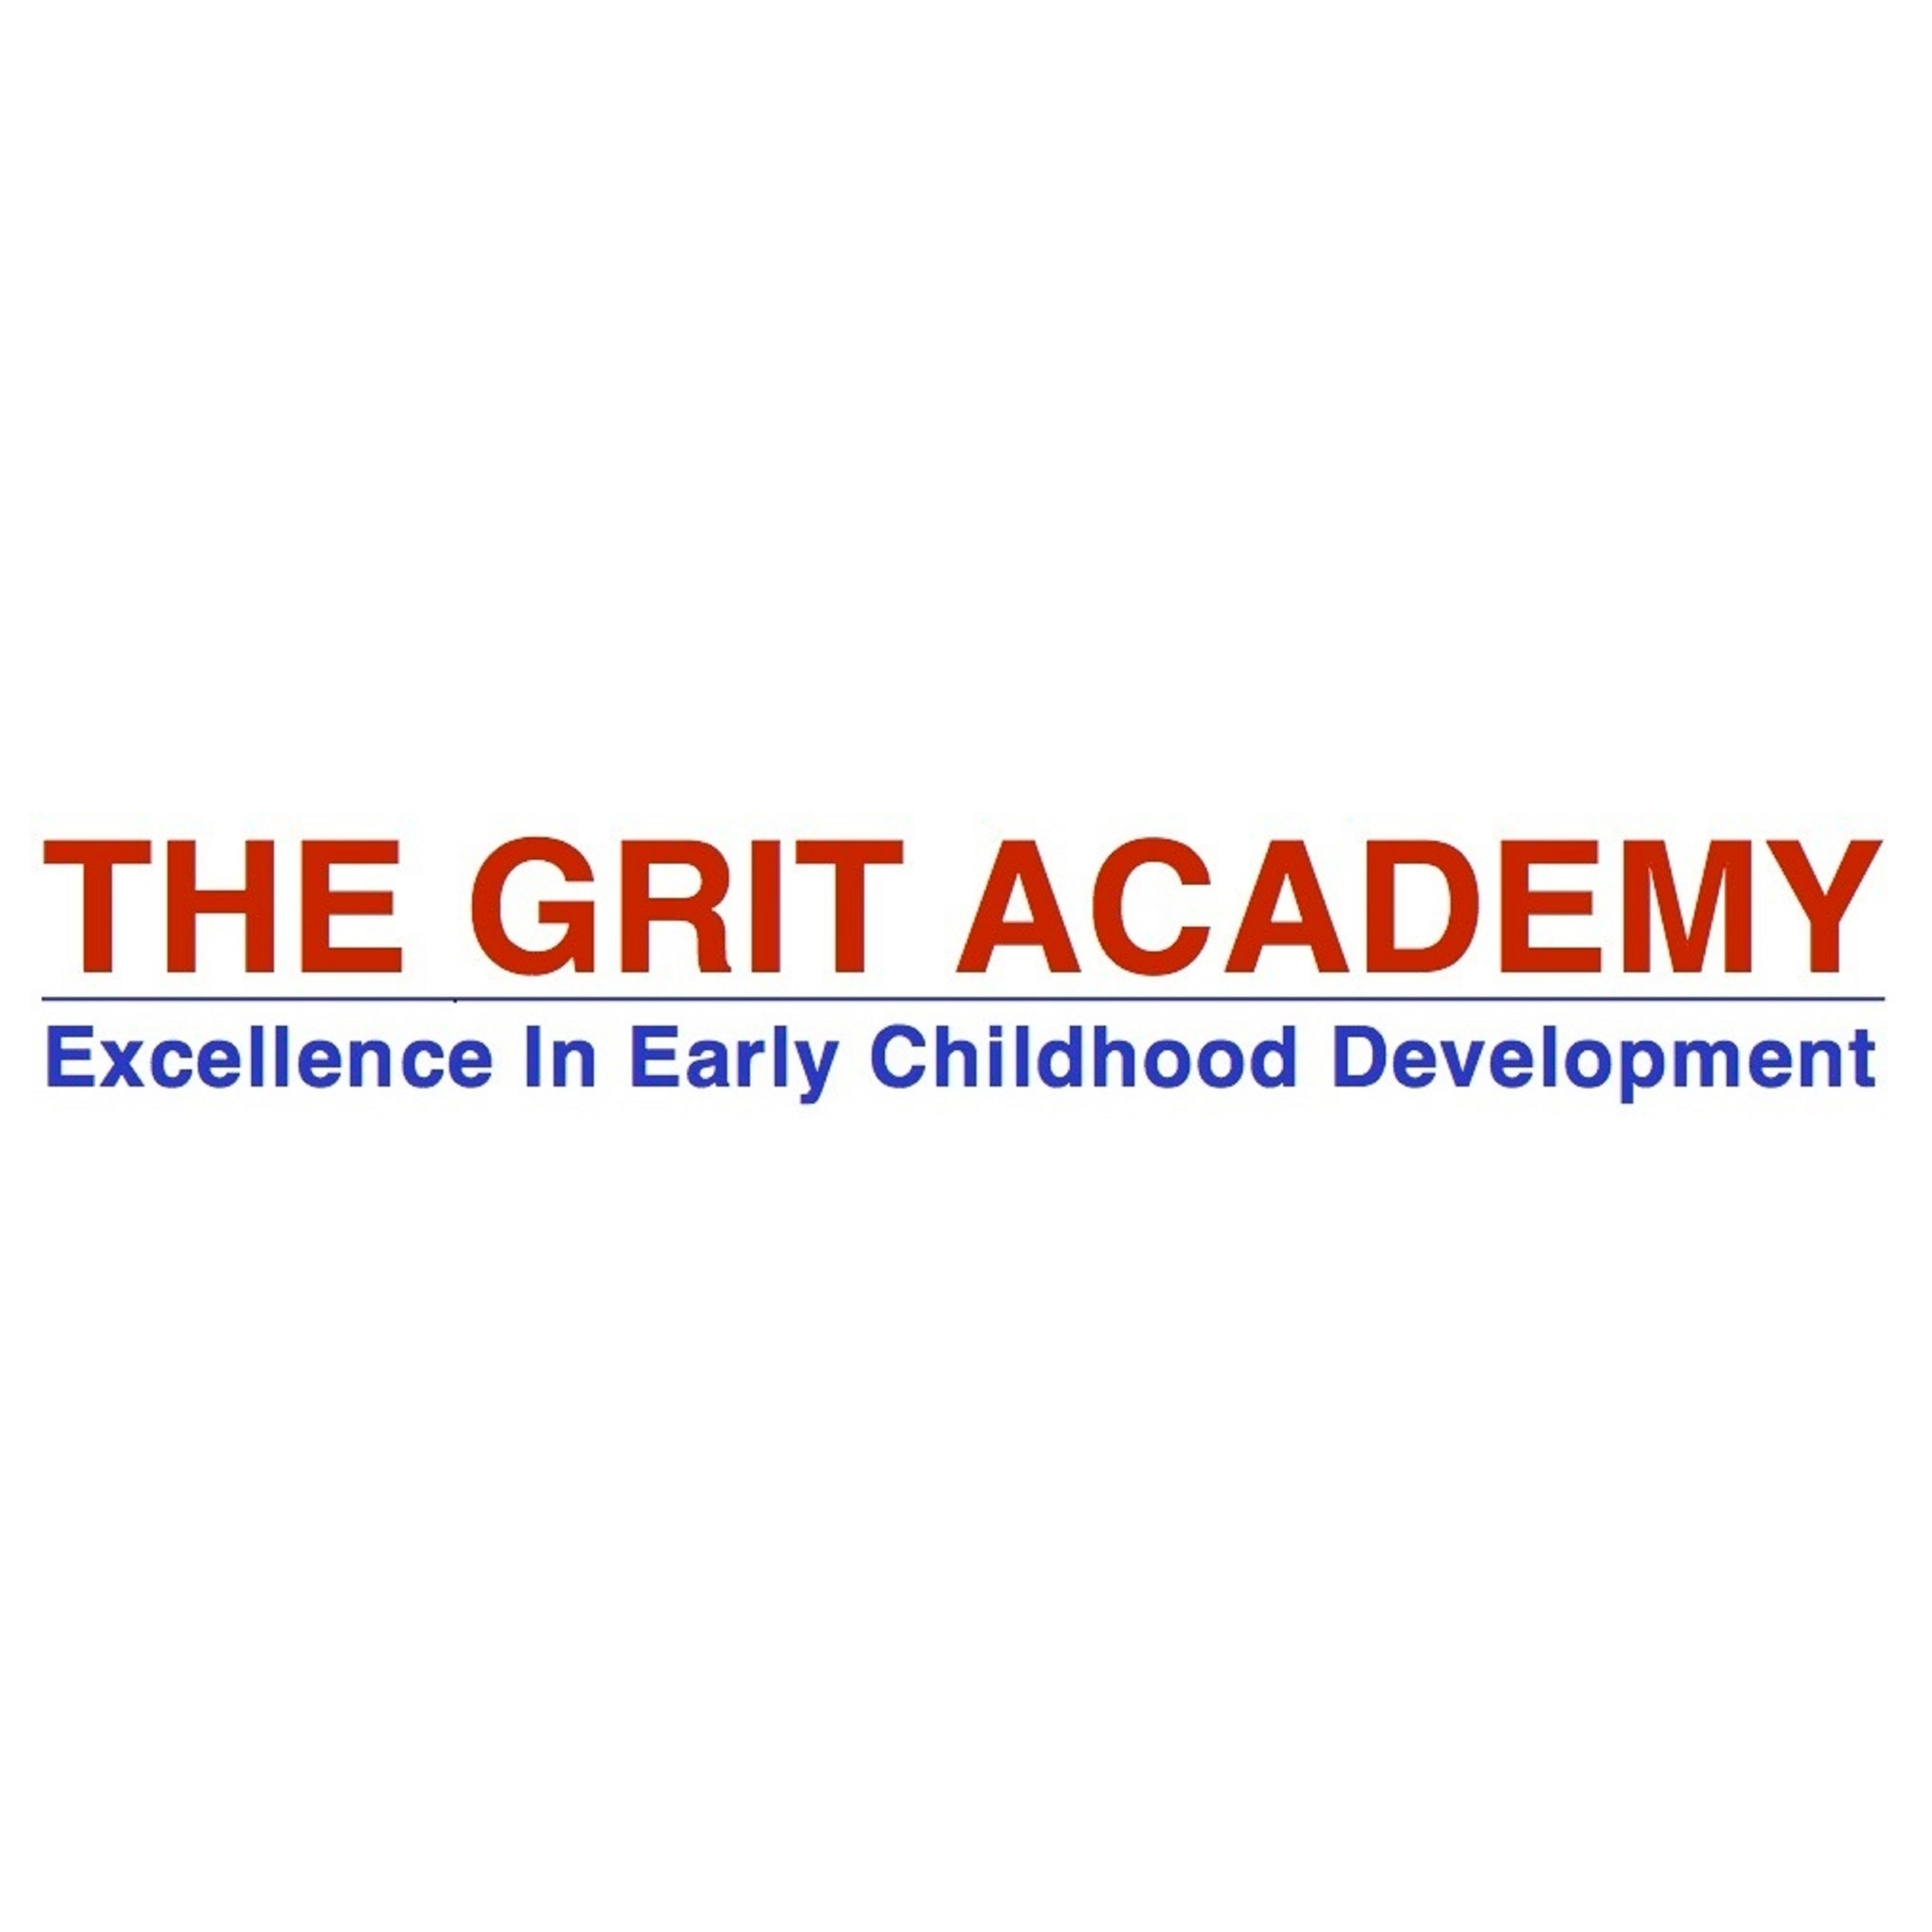 The Grit Academy